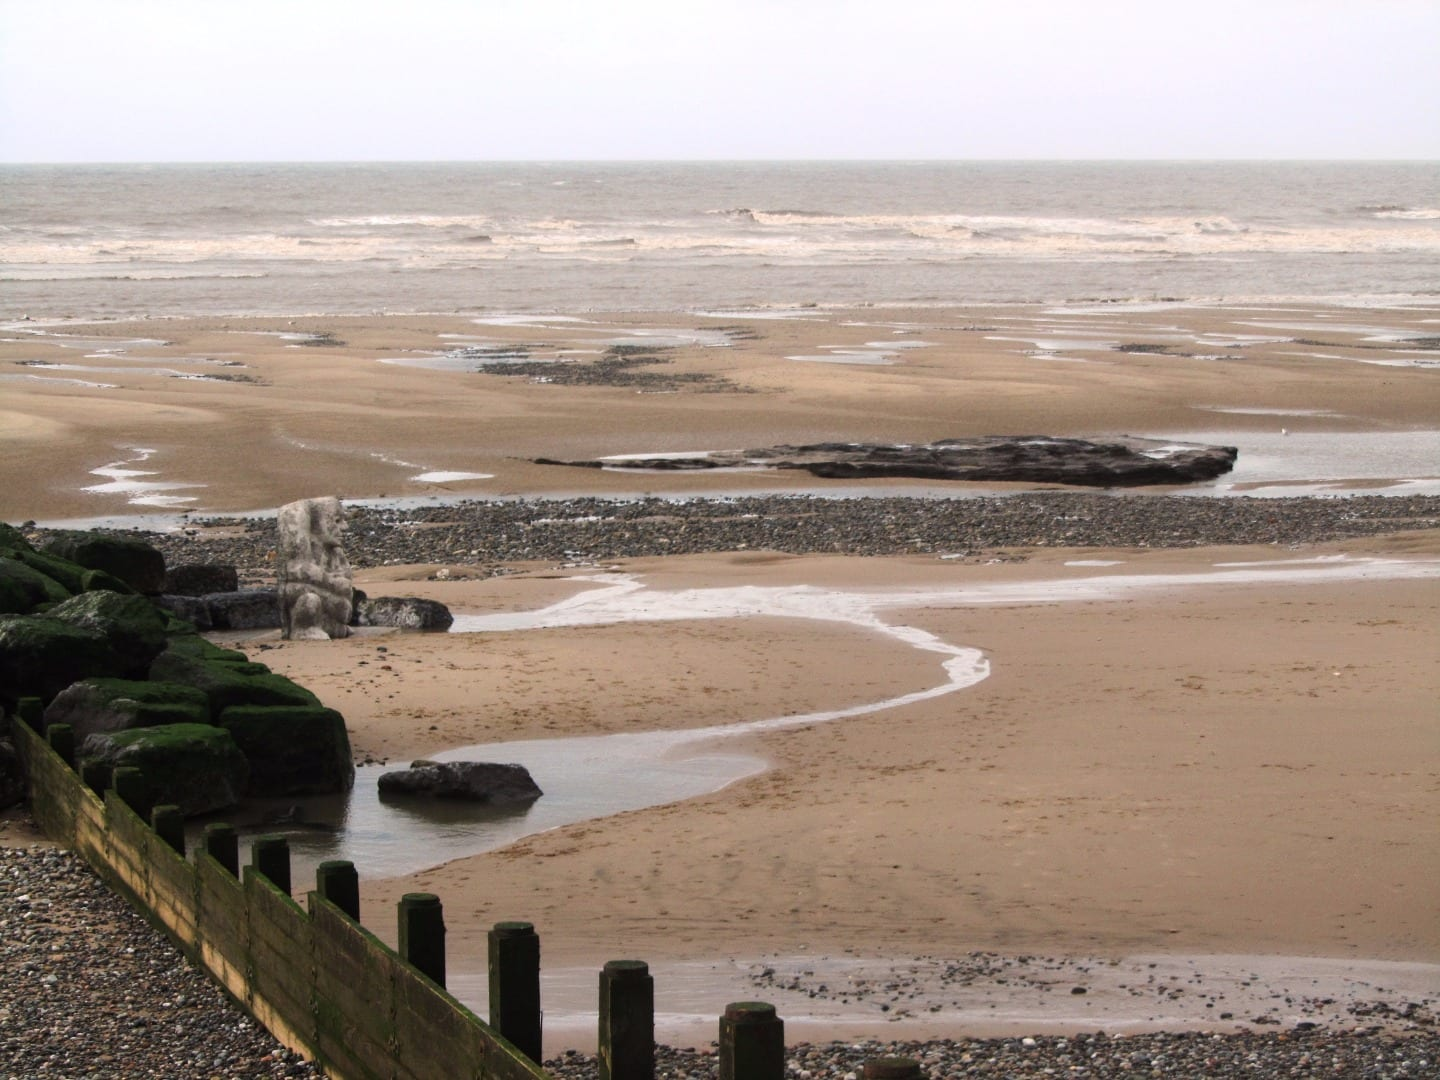 Location of the Stone Ogre on Cleveleys beach